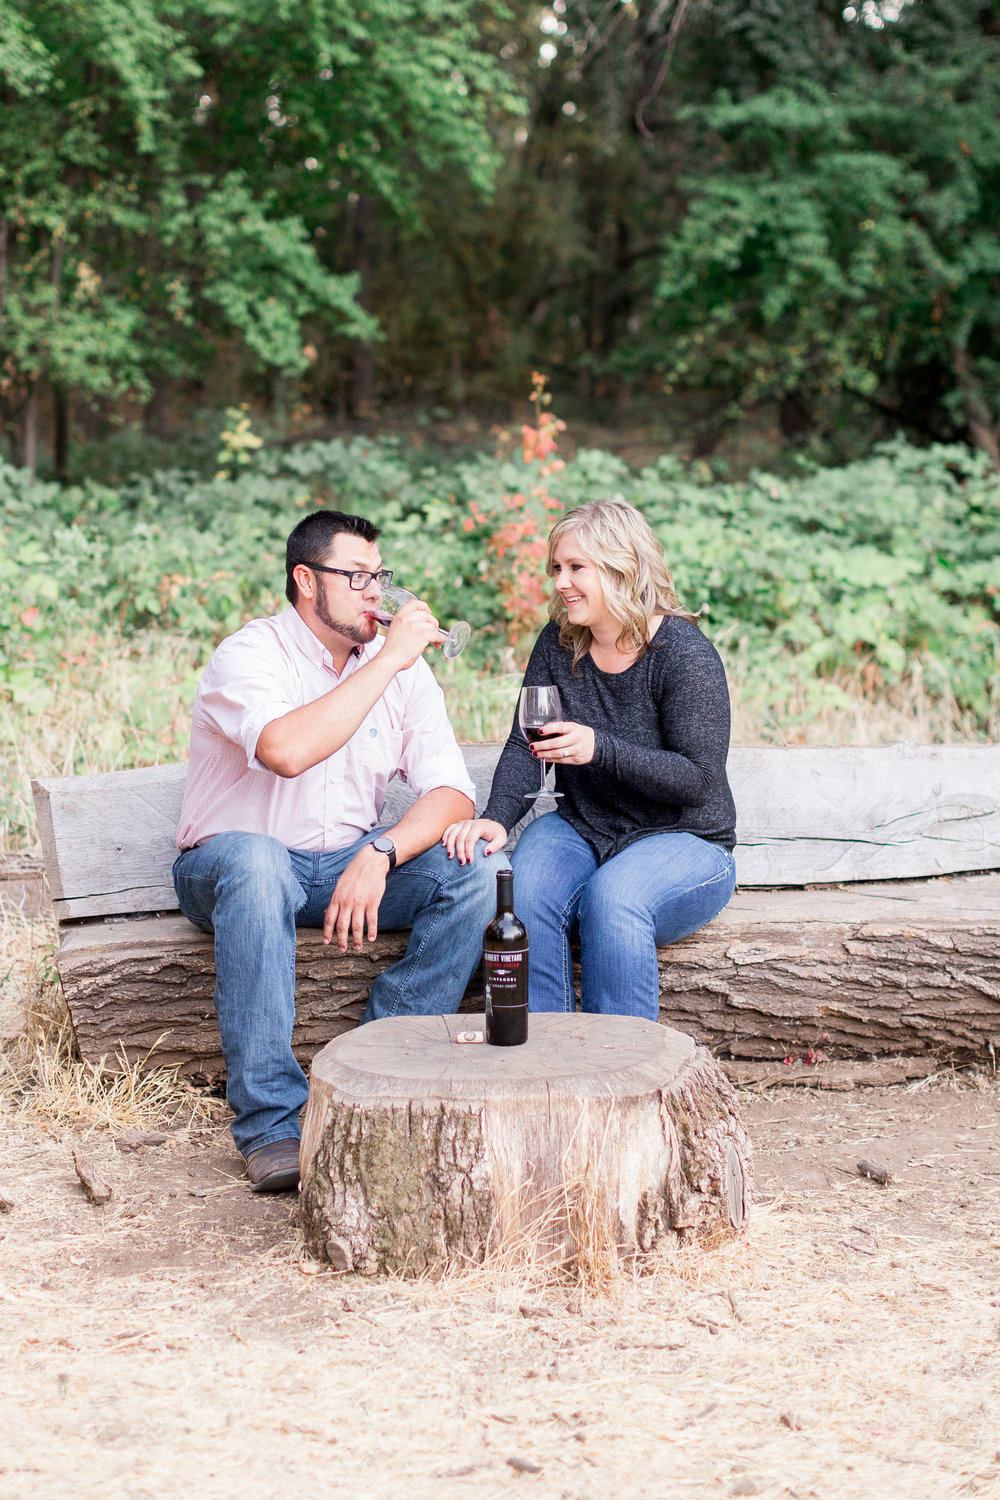 96Lower-Bidwell-Park-Chico-Engagement-photos (87 of).jpg